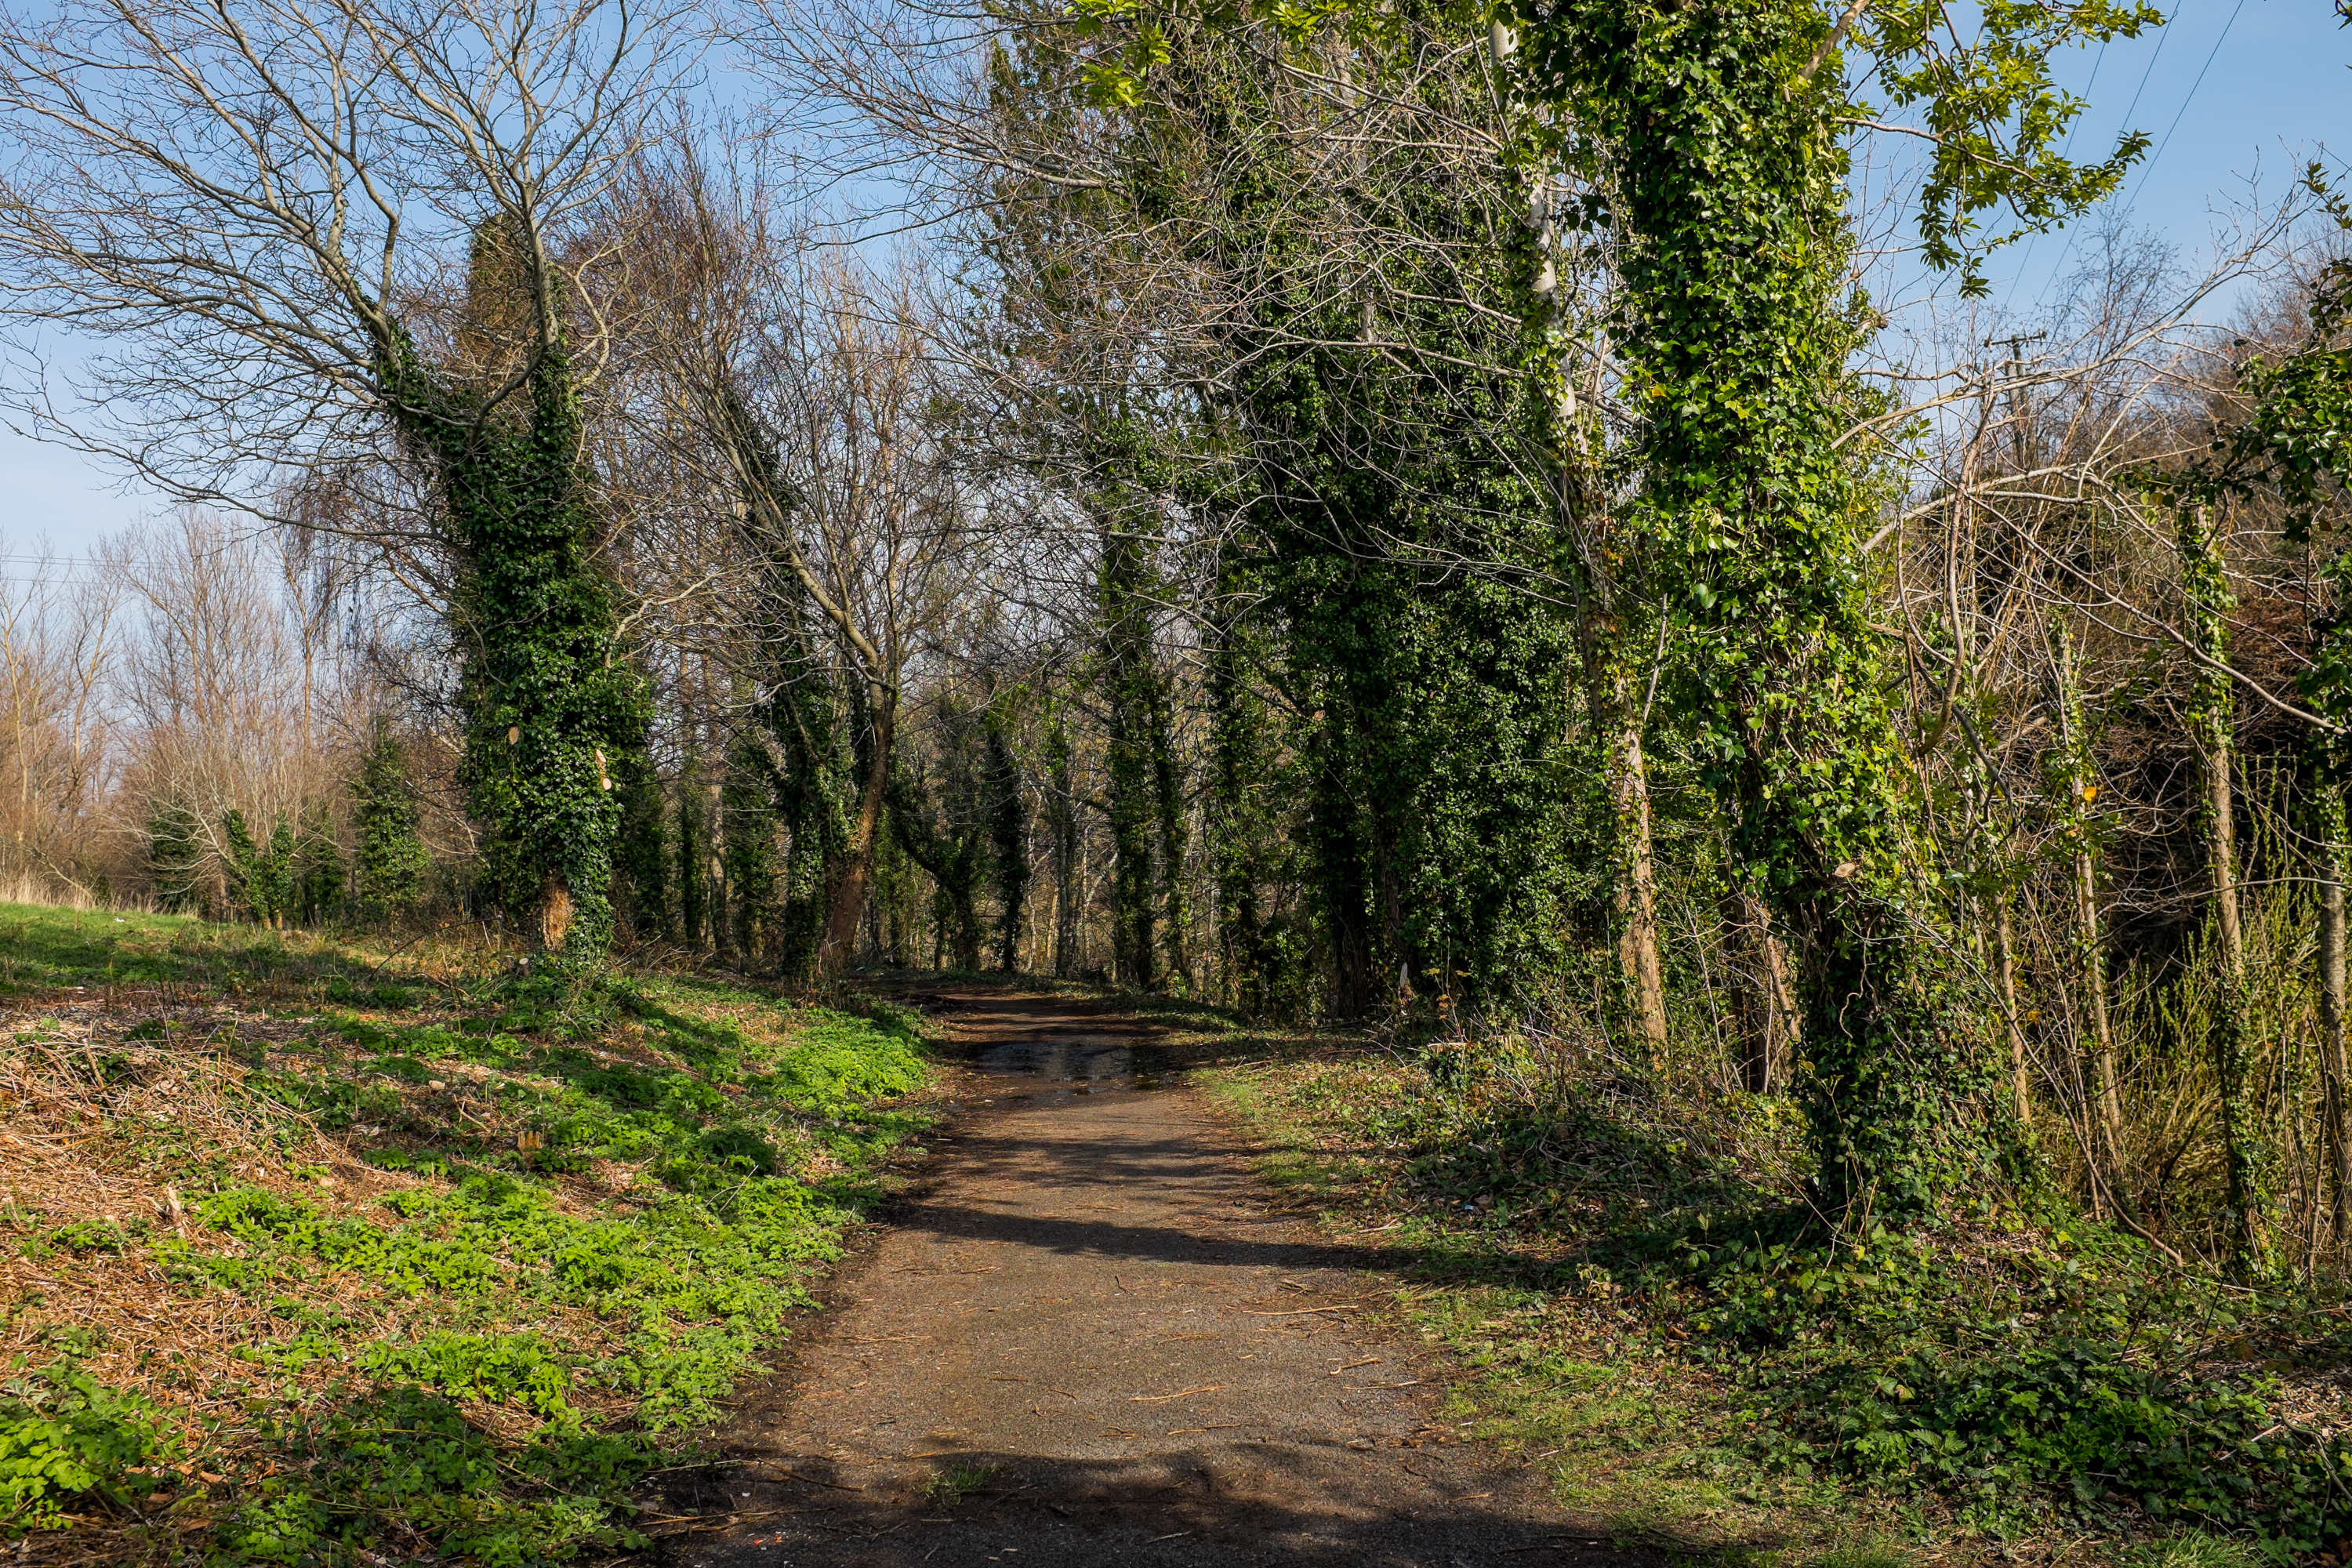 Forest Path in Spring - Picography Free Photo